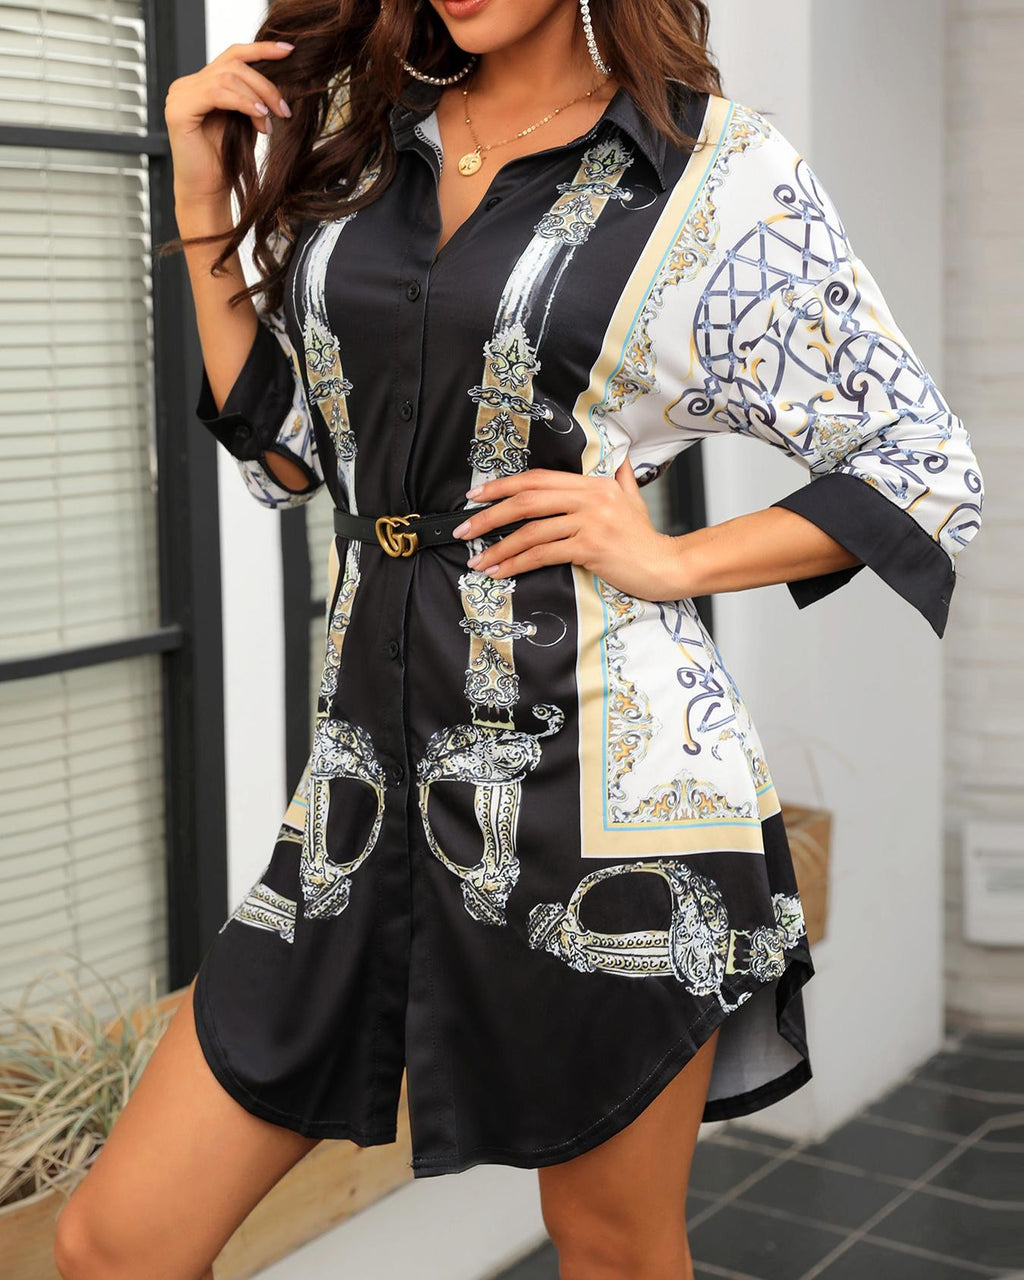 Plus Size Mixed Print Button Up Shirt Dress Top